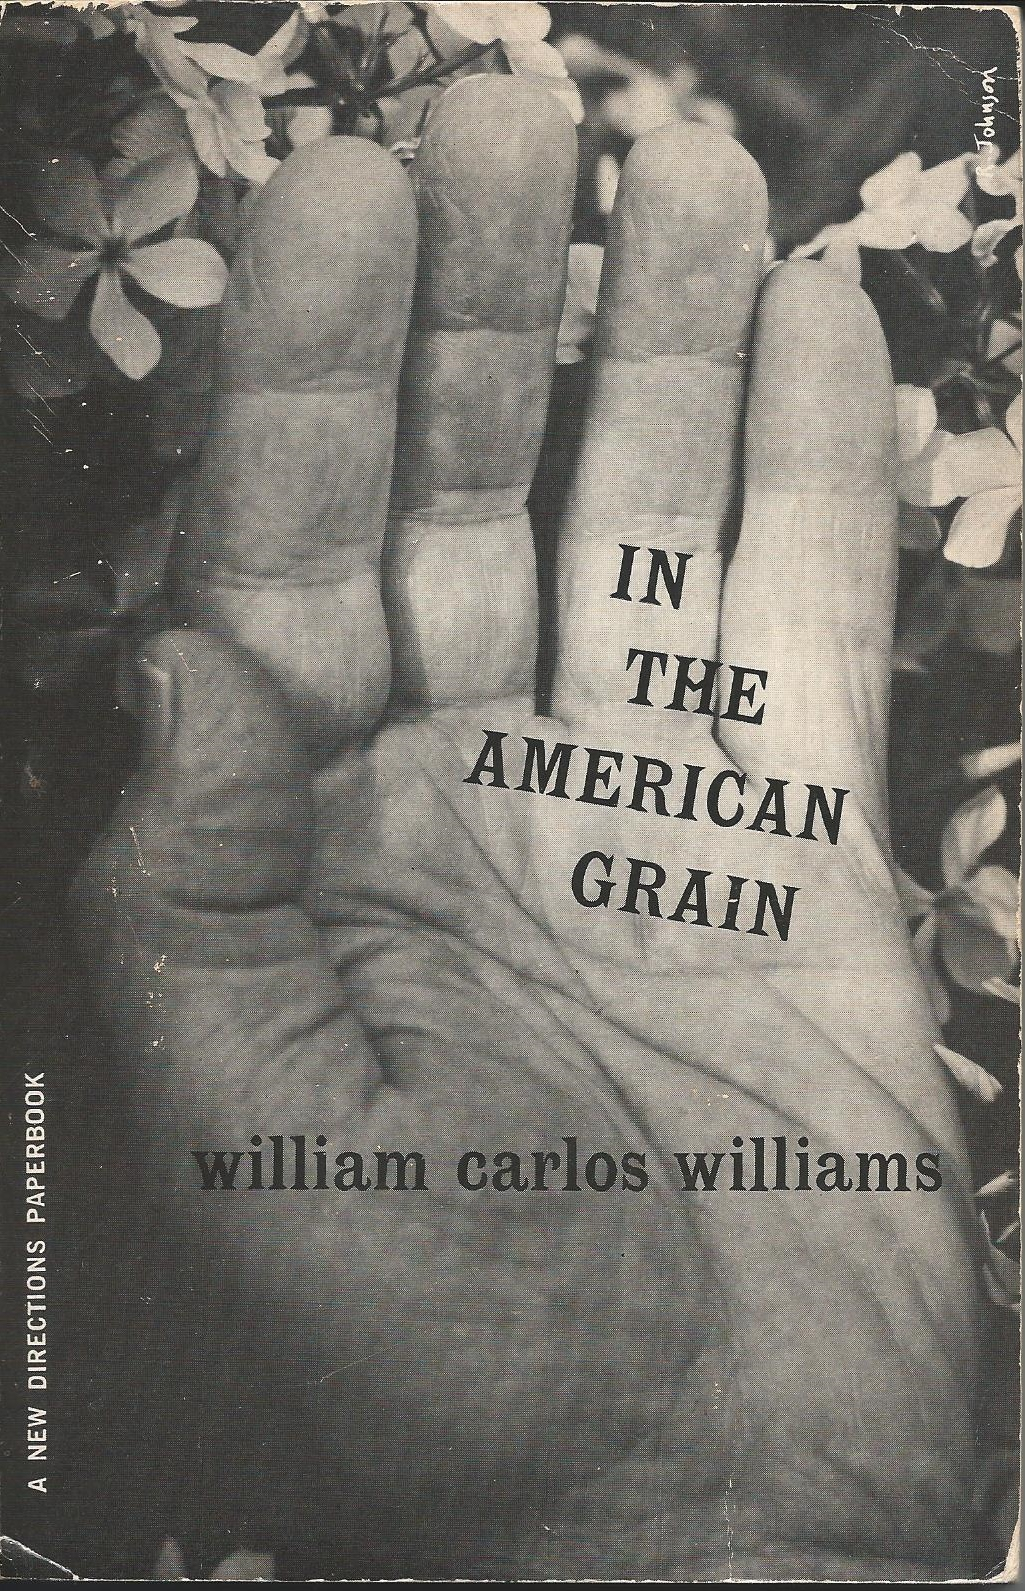 Fig. 14 Ray Johnson, In the American Grain: William Carlos Williams, 1956. © Ray Johnson Estate, Courtesy Richard L. Feigen & Co.